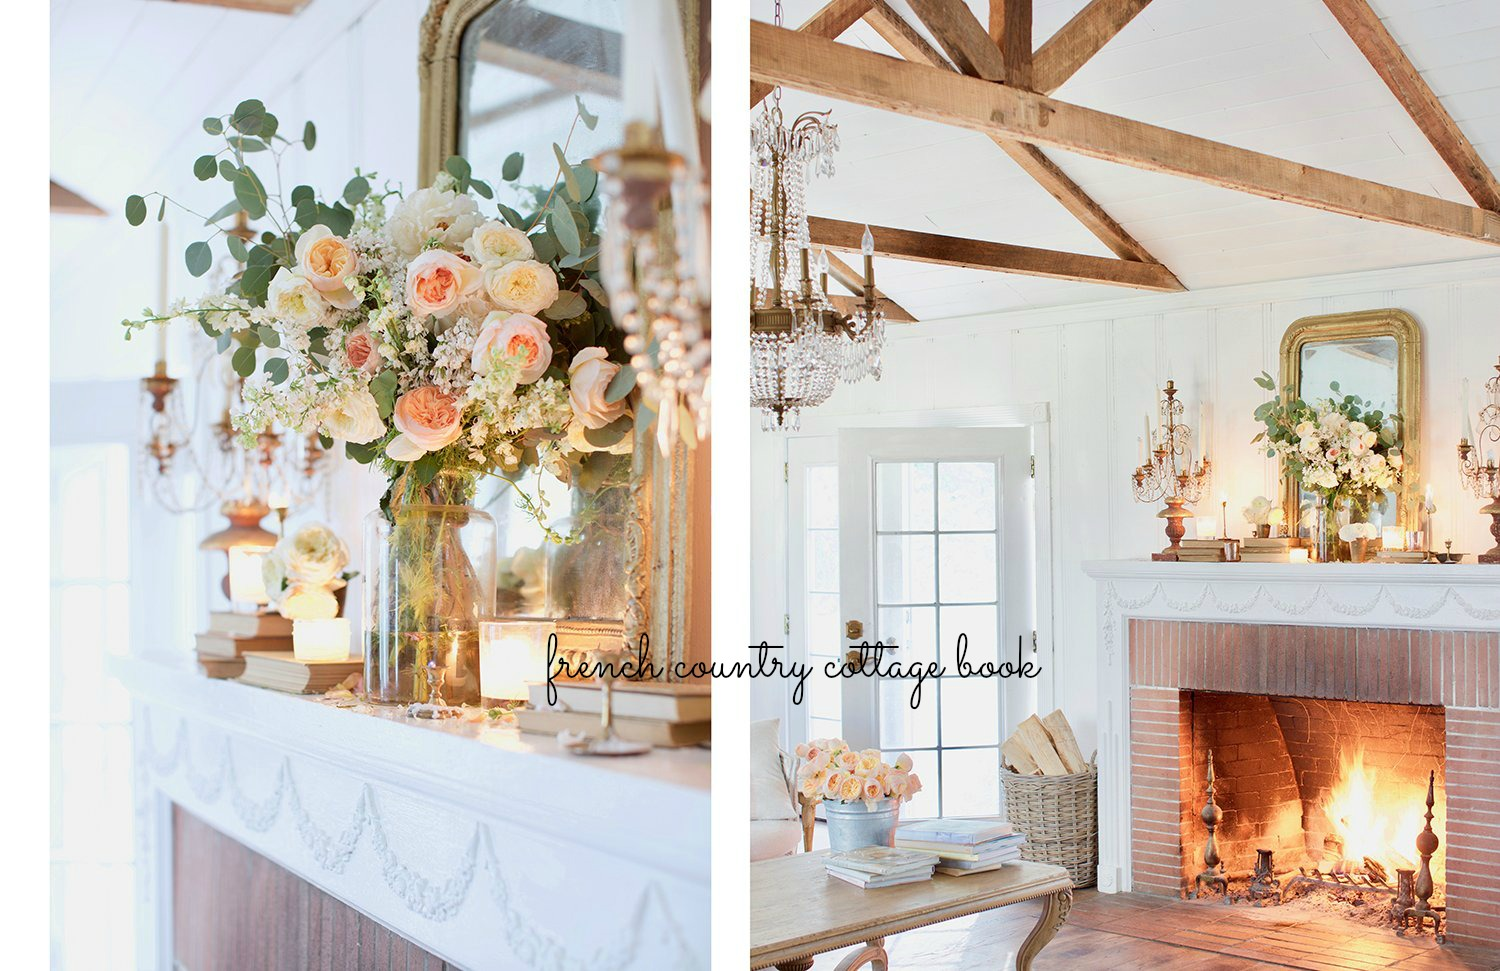 French Country Cottage Book